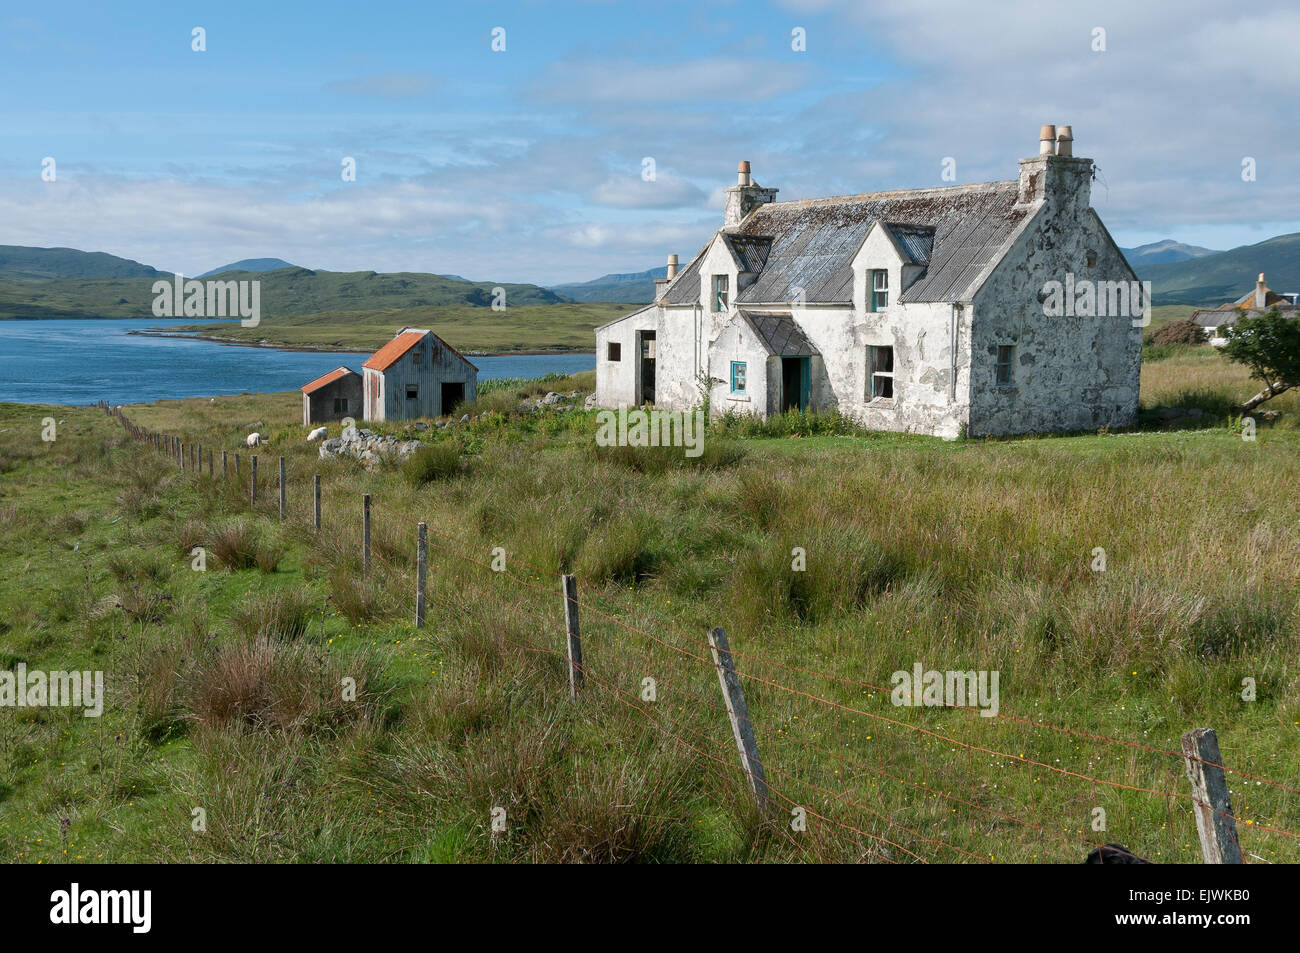 ruined derelict  vernacular cottage on isle of  lewis - Stock Image